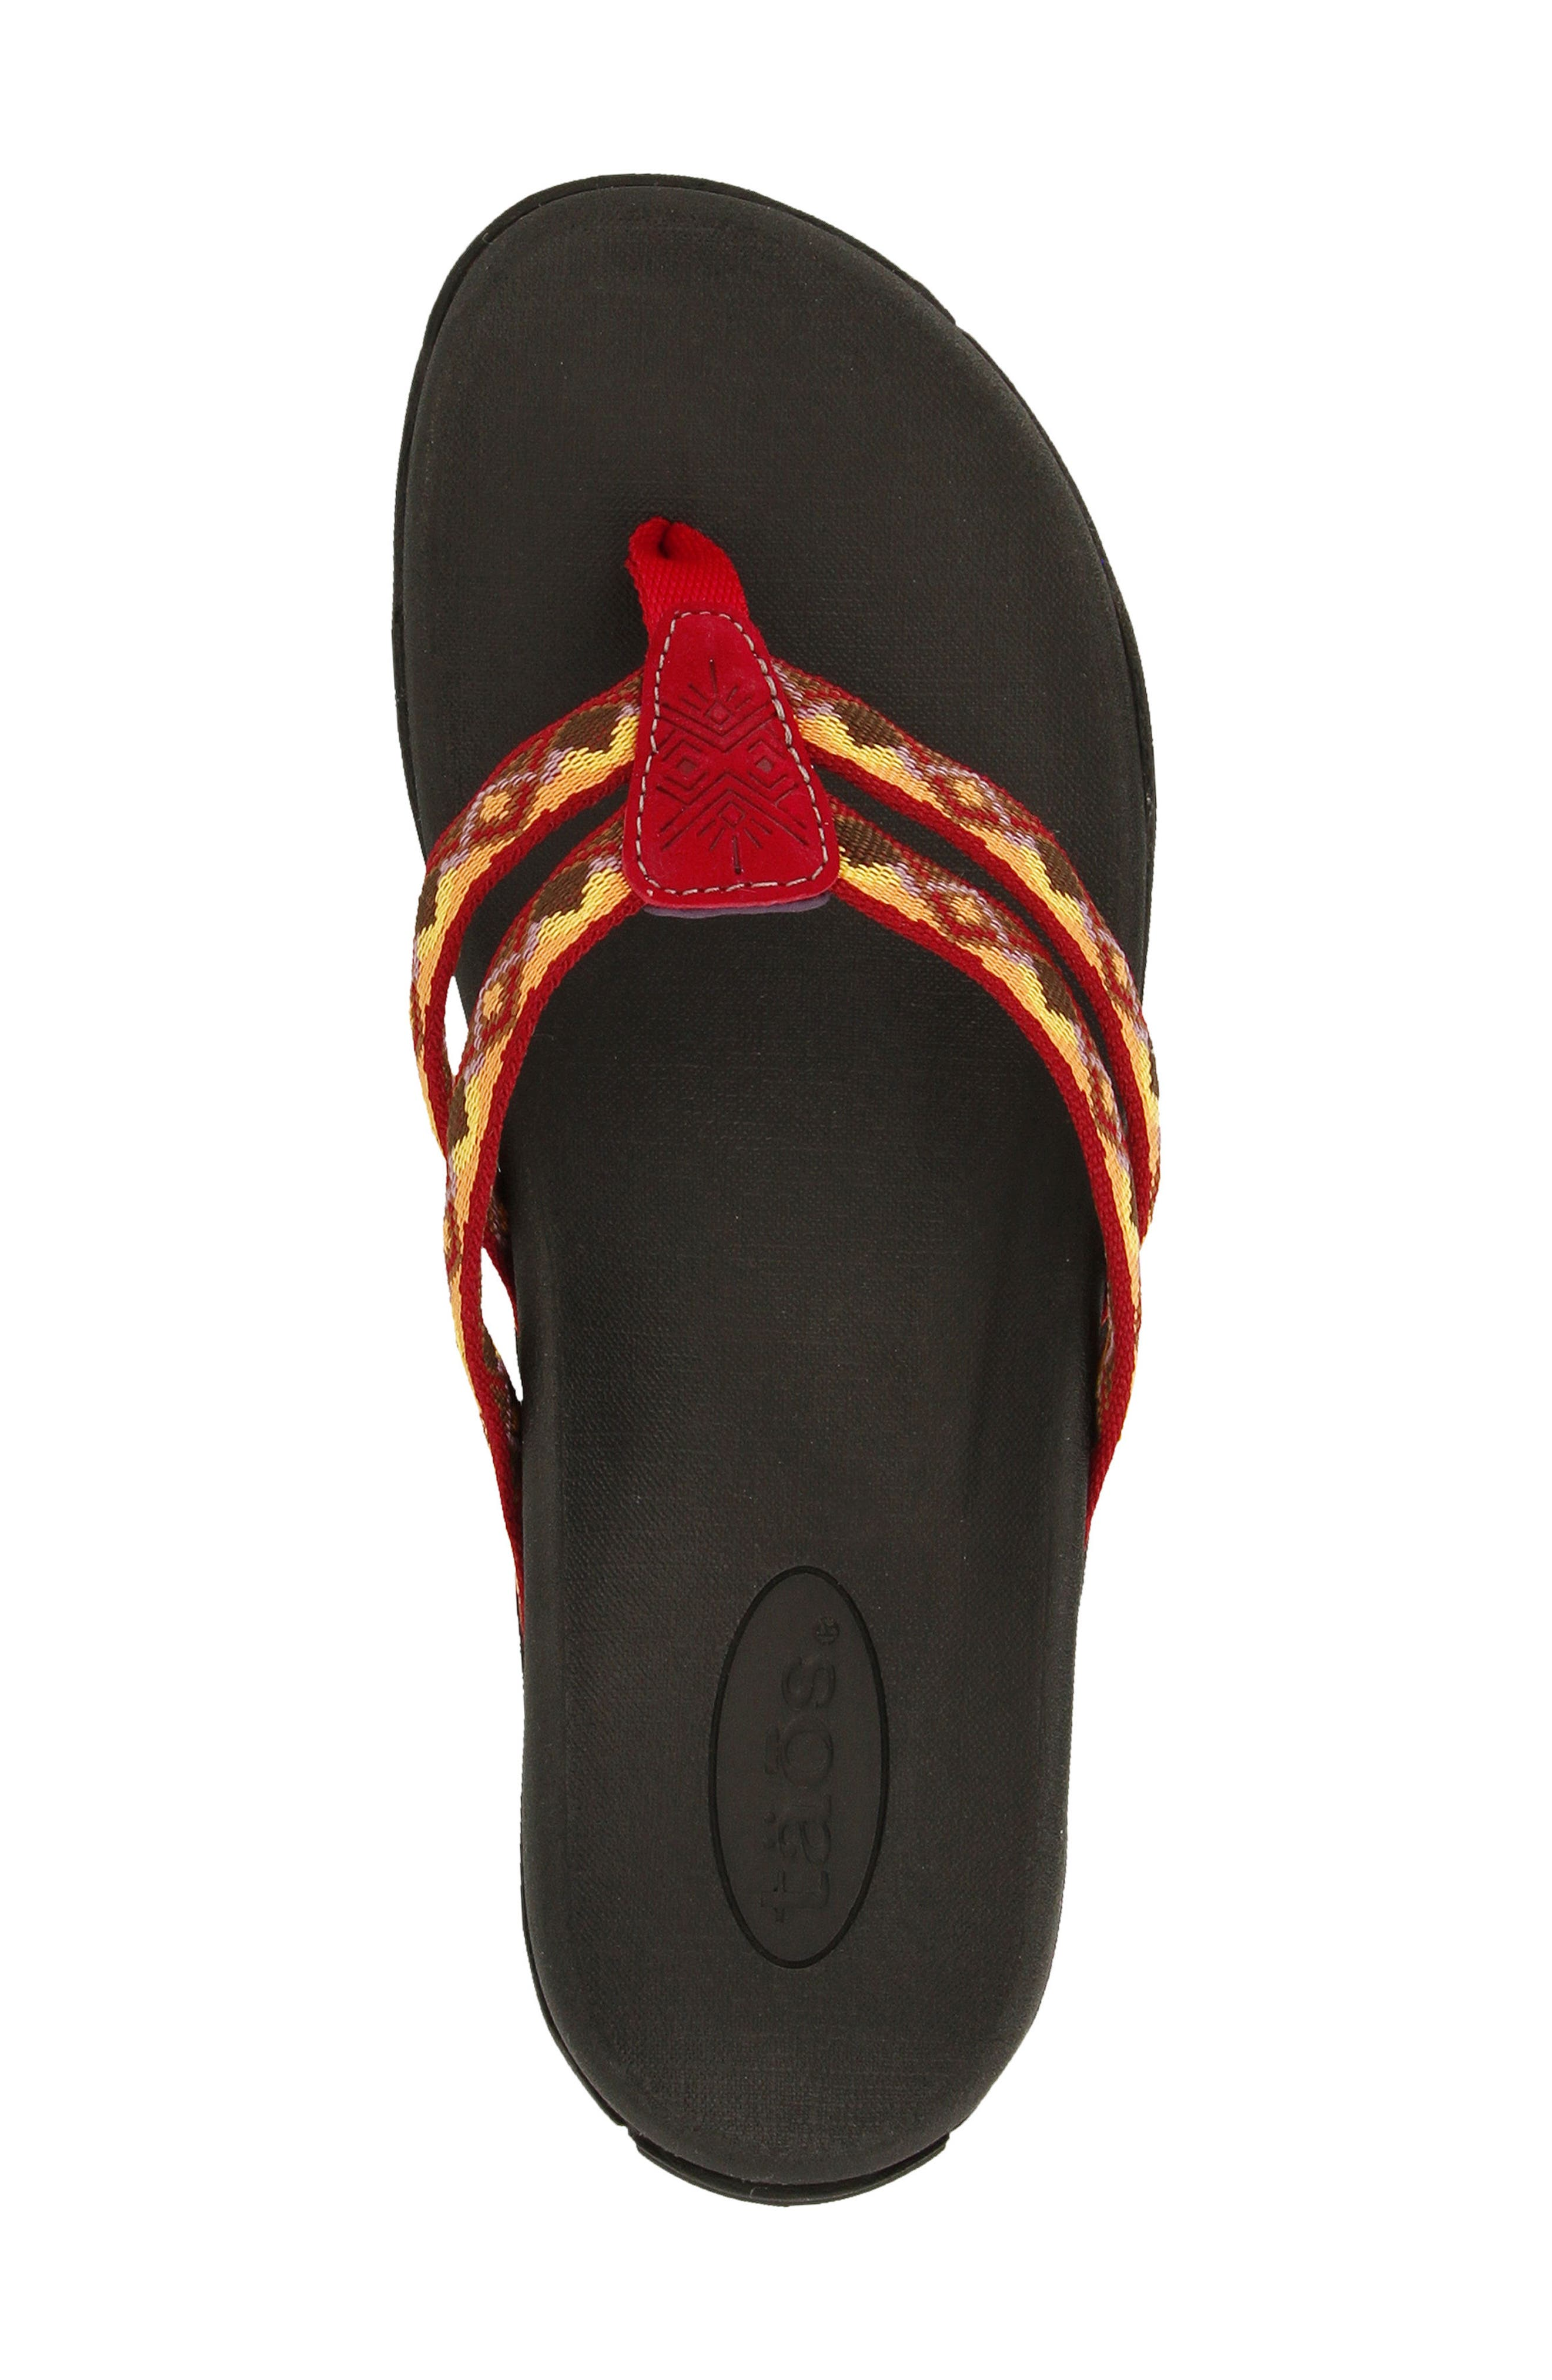 Primo Flip Flop,                             Alternate thumbnail 4, color,                             Red/ Orange Fabric